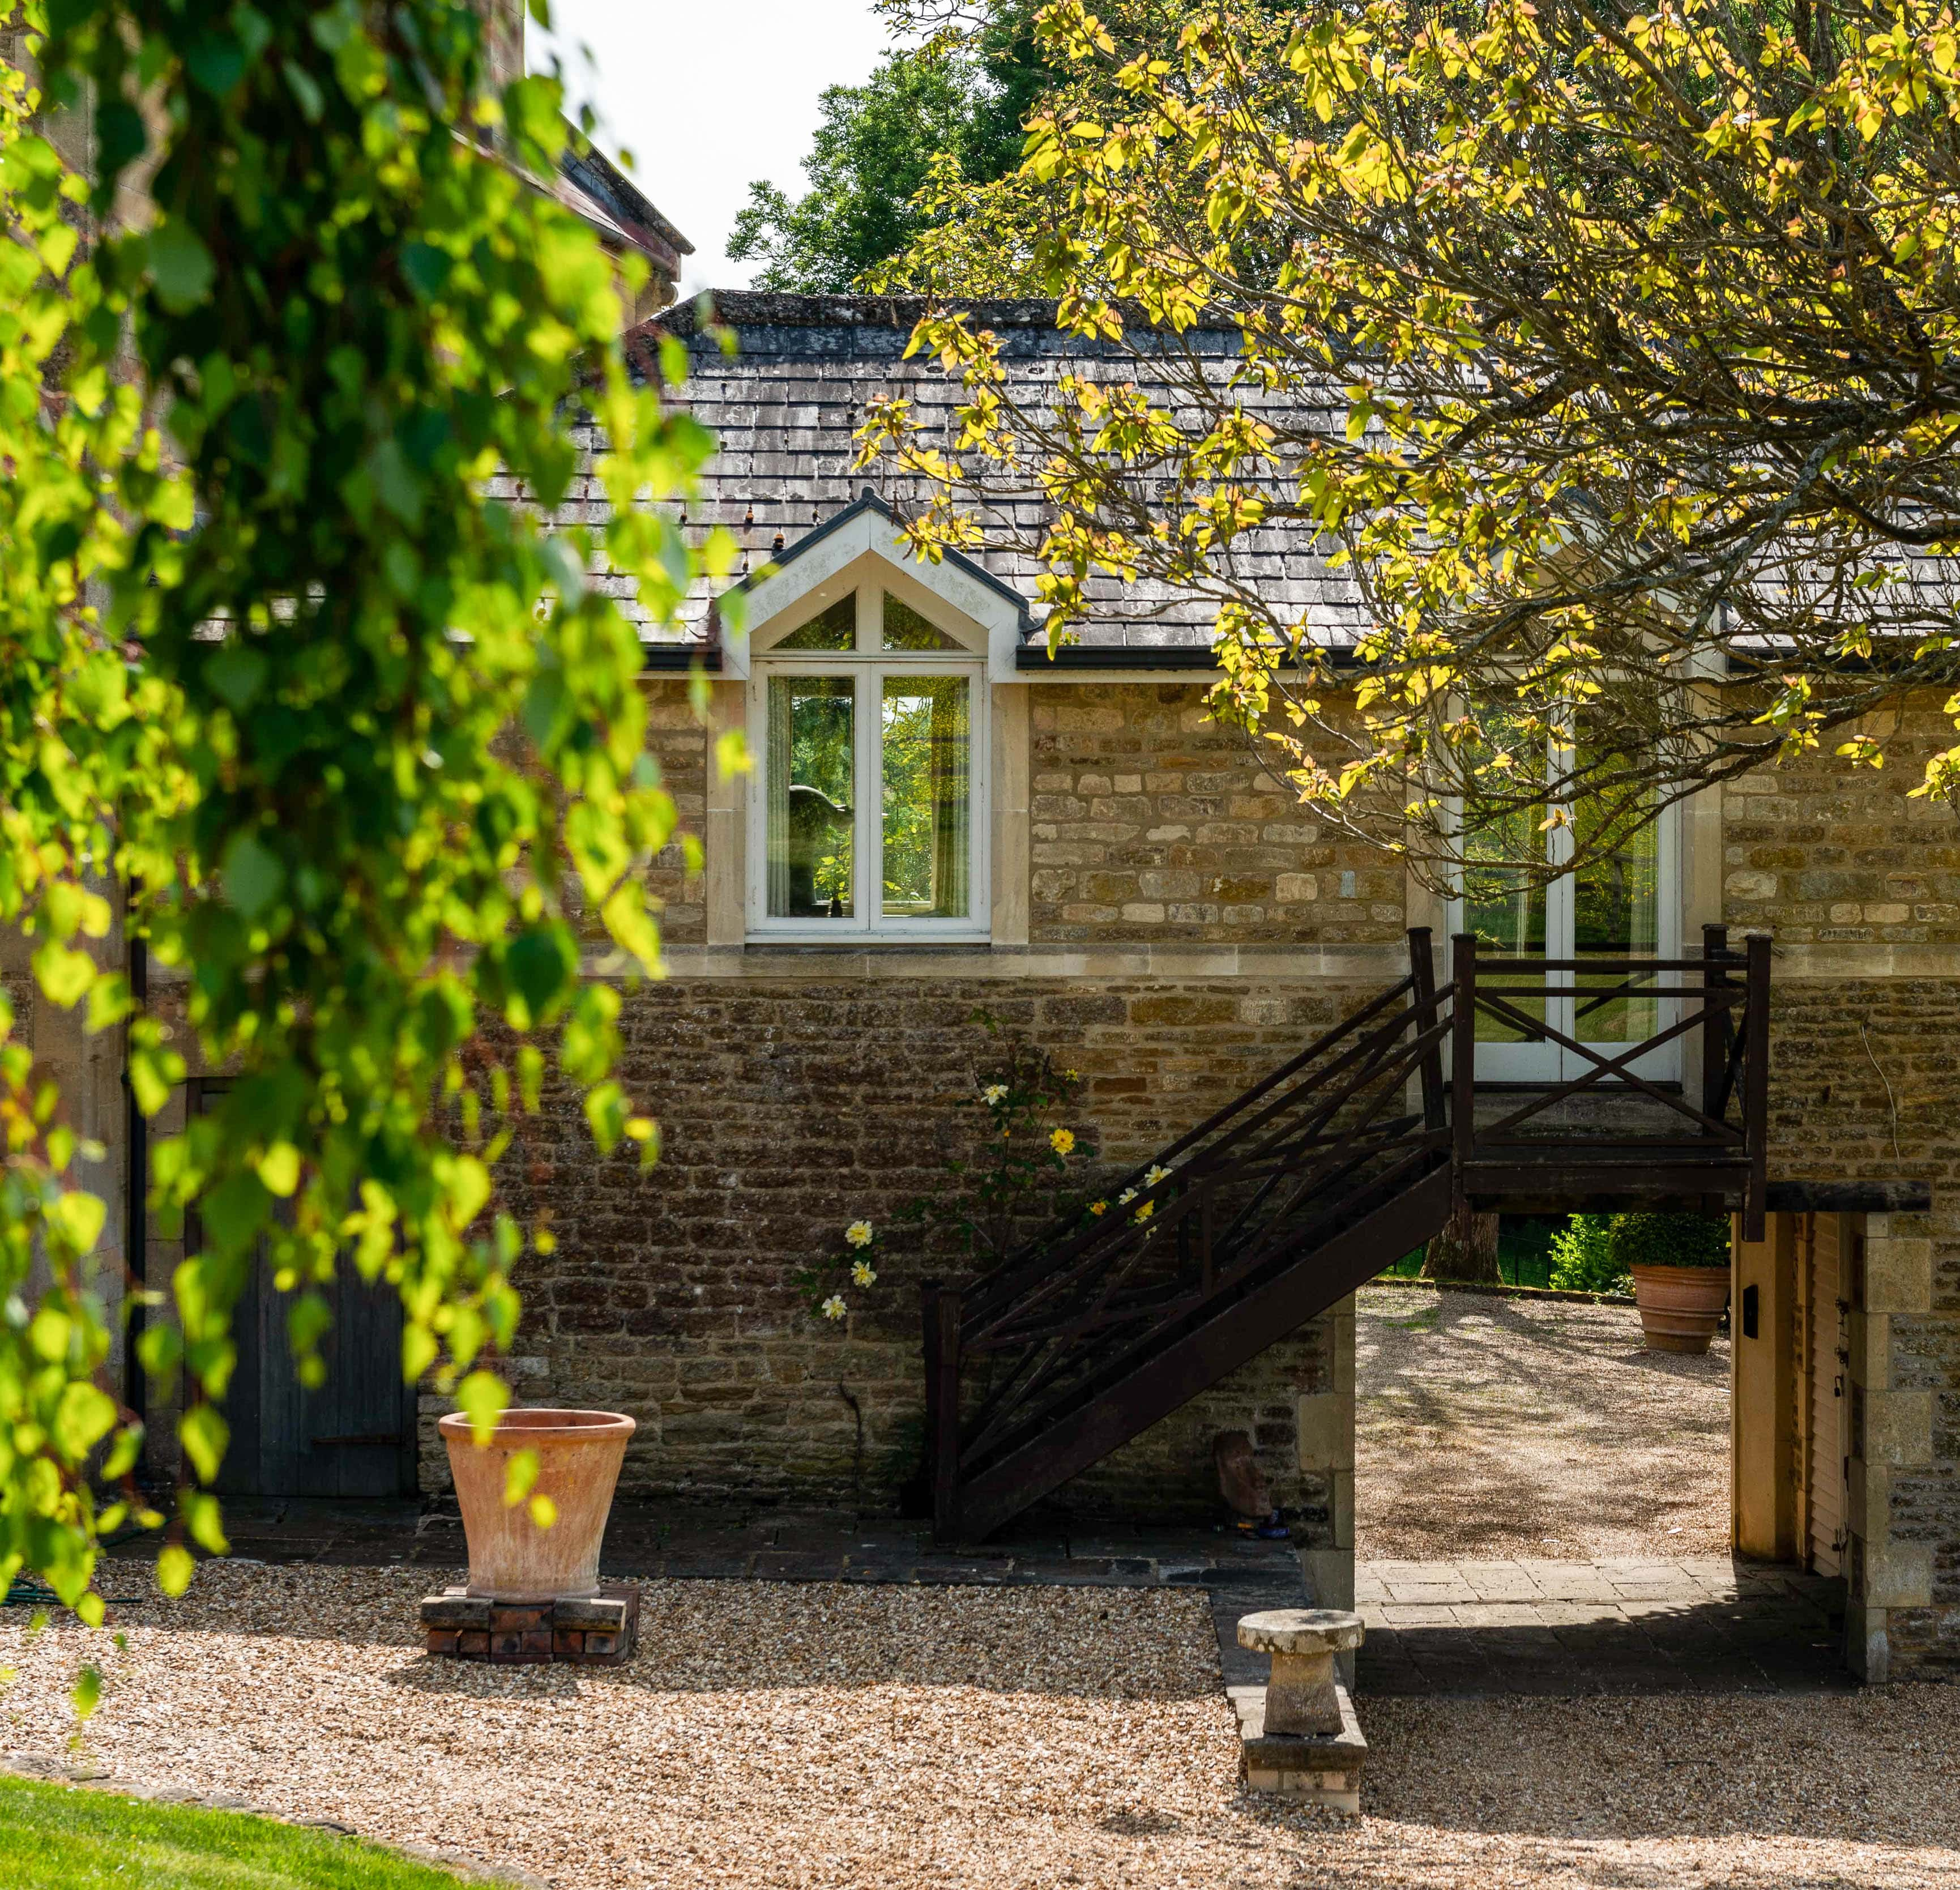 A beautiful country home courtyard framed by foliage